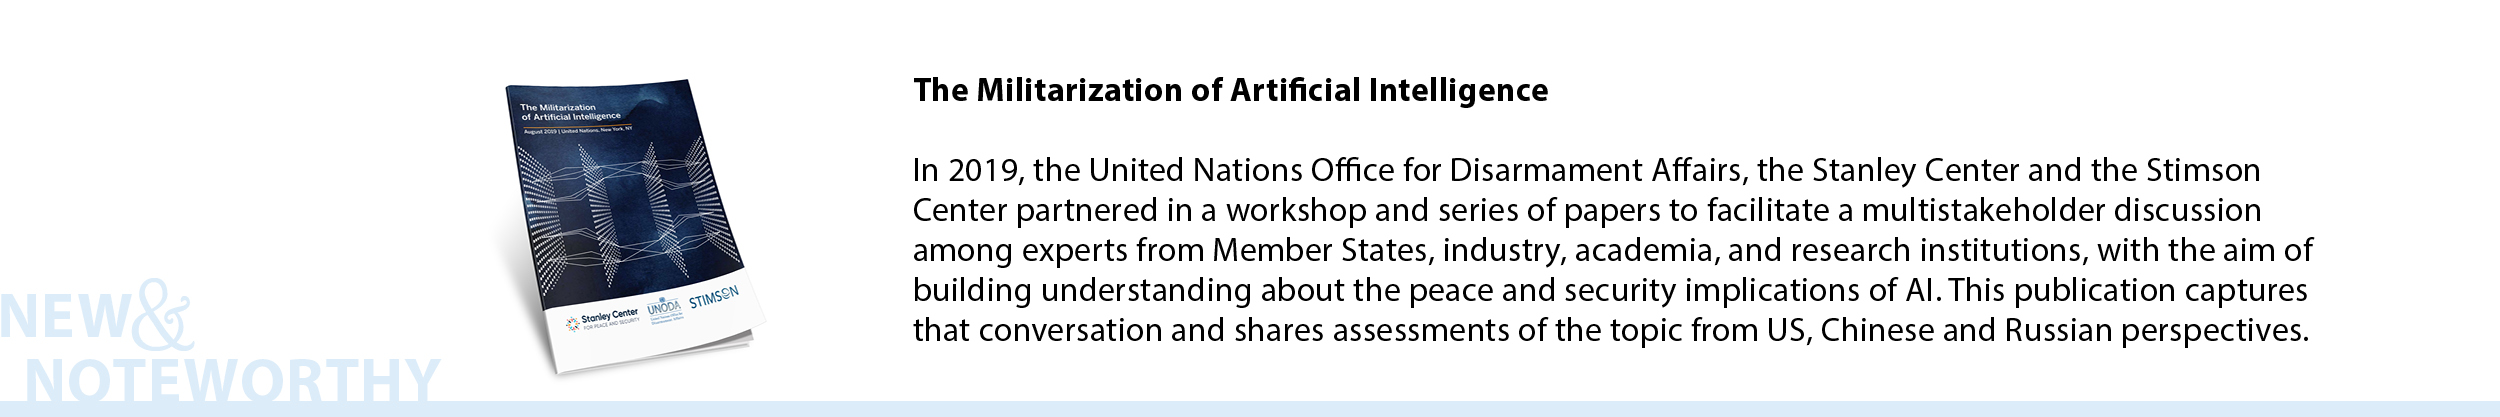 The Militarization of Artificial Intelligence - In 2019, the United Nations Office for Disarmament Affairs, the Stanley Center and the Stimson Center partnered in a workshop and series of papers to facilitate a multistakeholder discussion among experts from Member States, industry, academia, and research institutions, with the aim of building understanding about the peace and security implications of AI. This publication captures that conversation and shares assessments of the topic from US, Chinese and Russian perspectives.